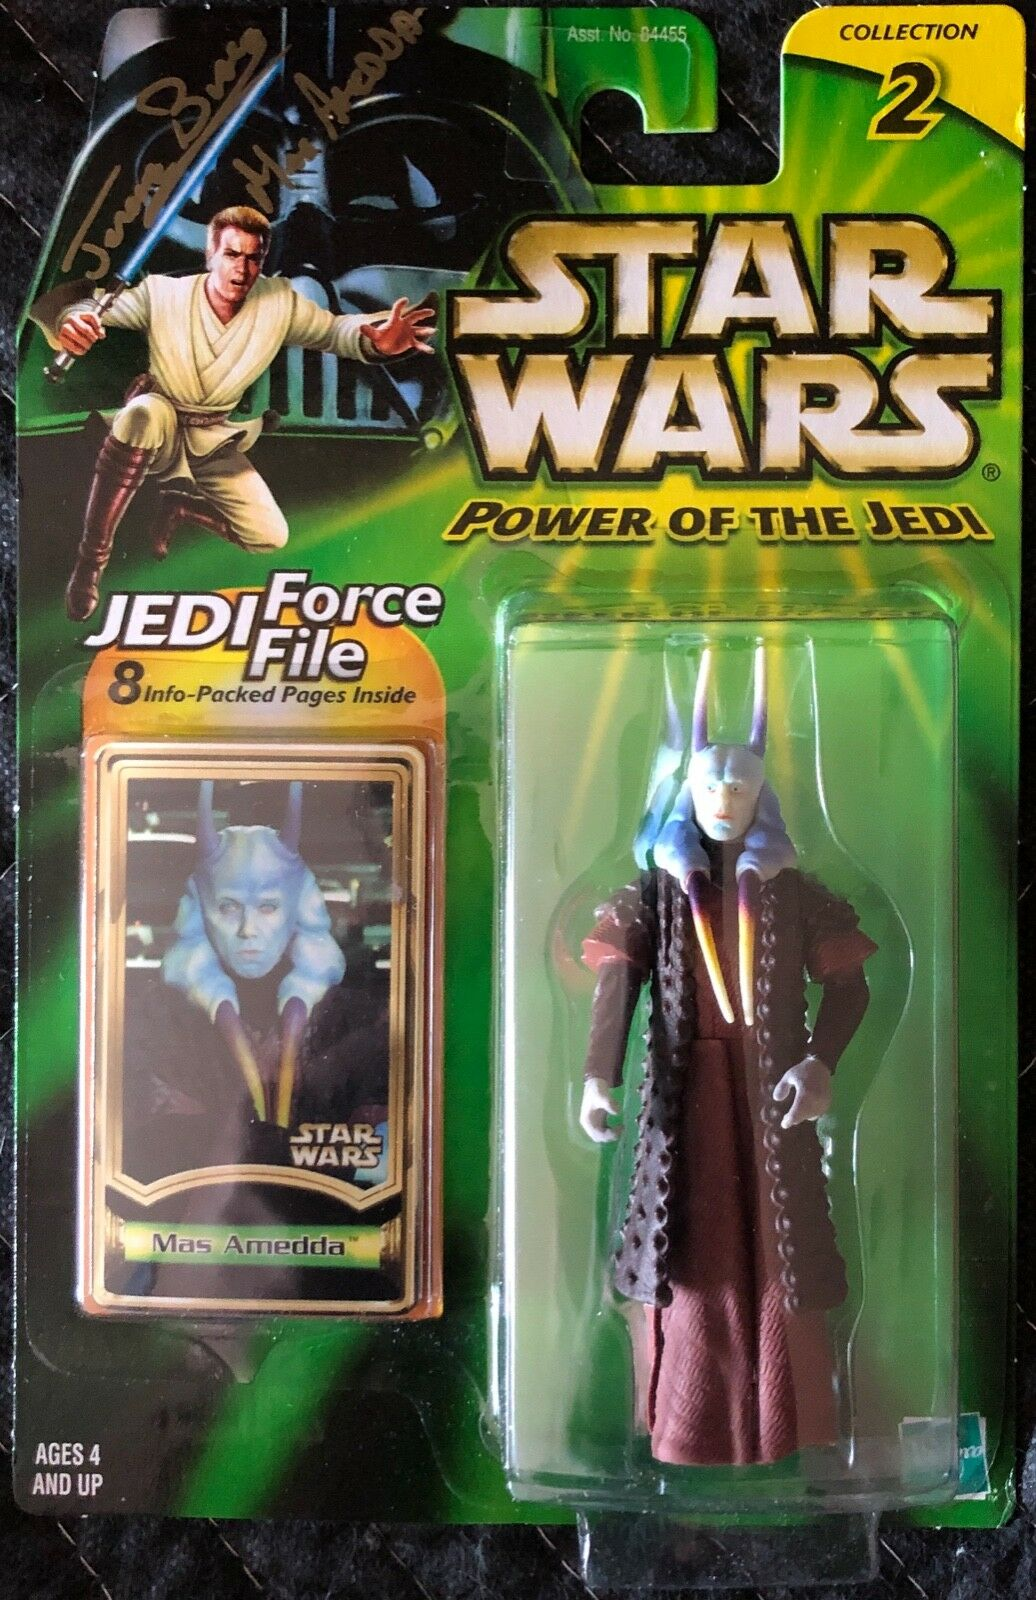 Autographed Power Of The Jedi Mas Amedda Signed By Jerome Blake Unopened